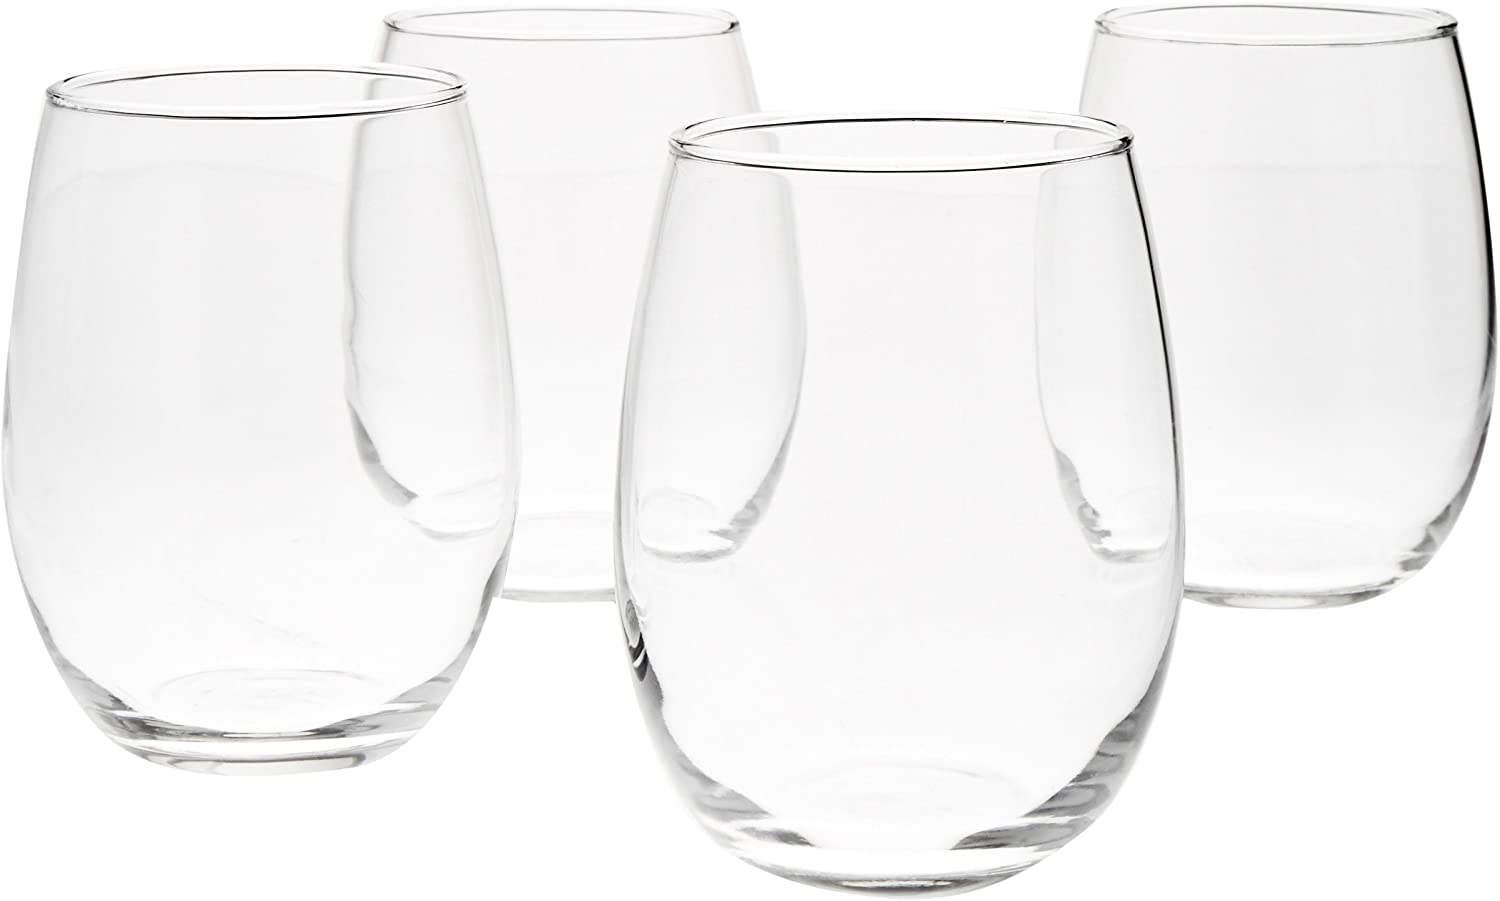 AmazonBasics Stemless Wine Glasses, 15-Ounce, Set of 4